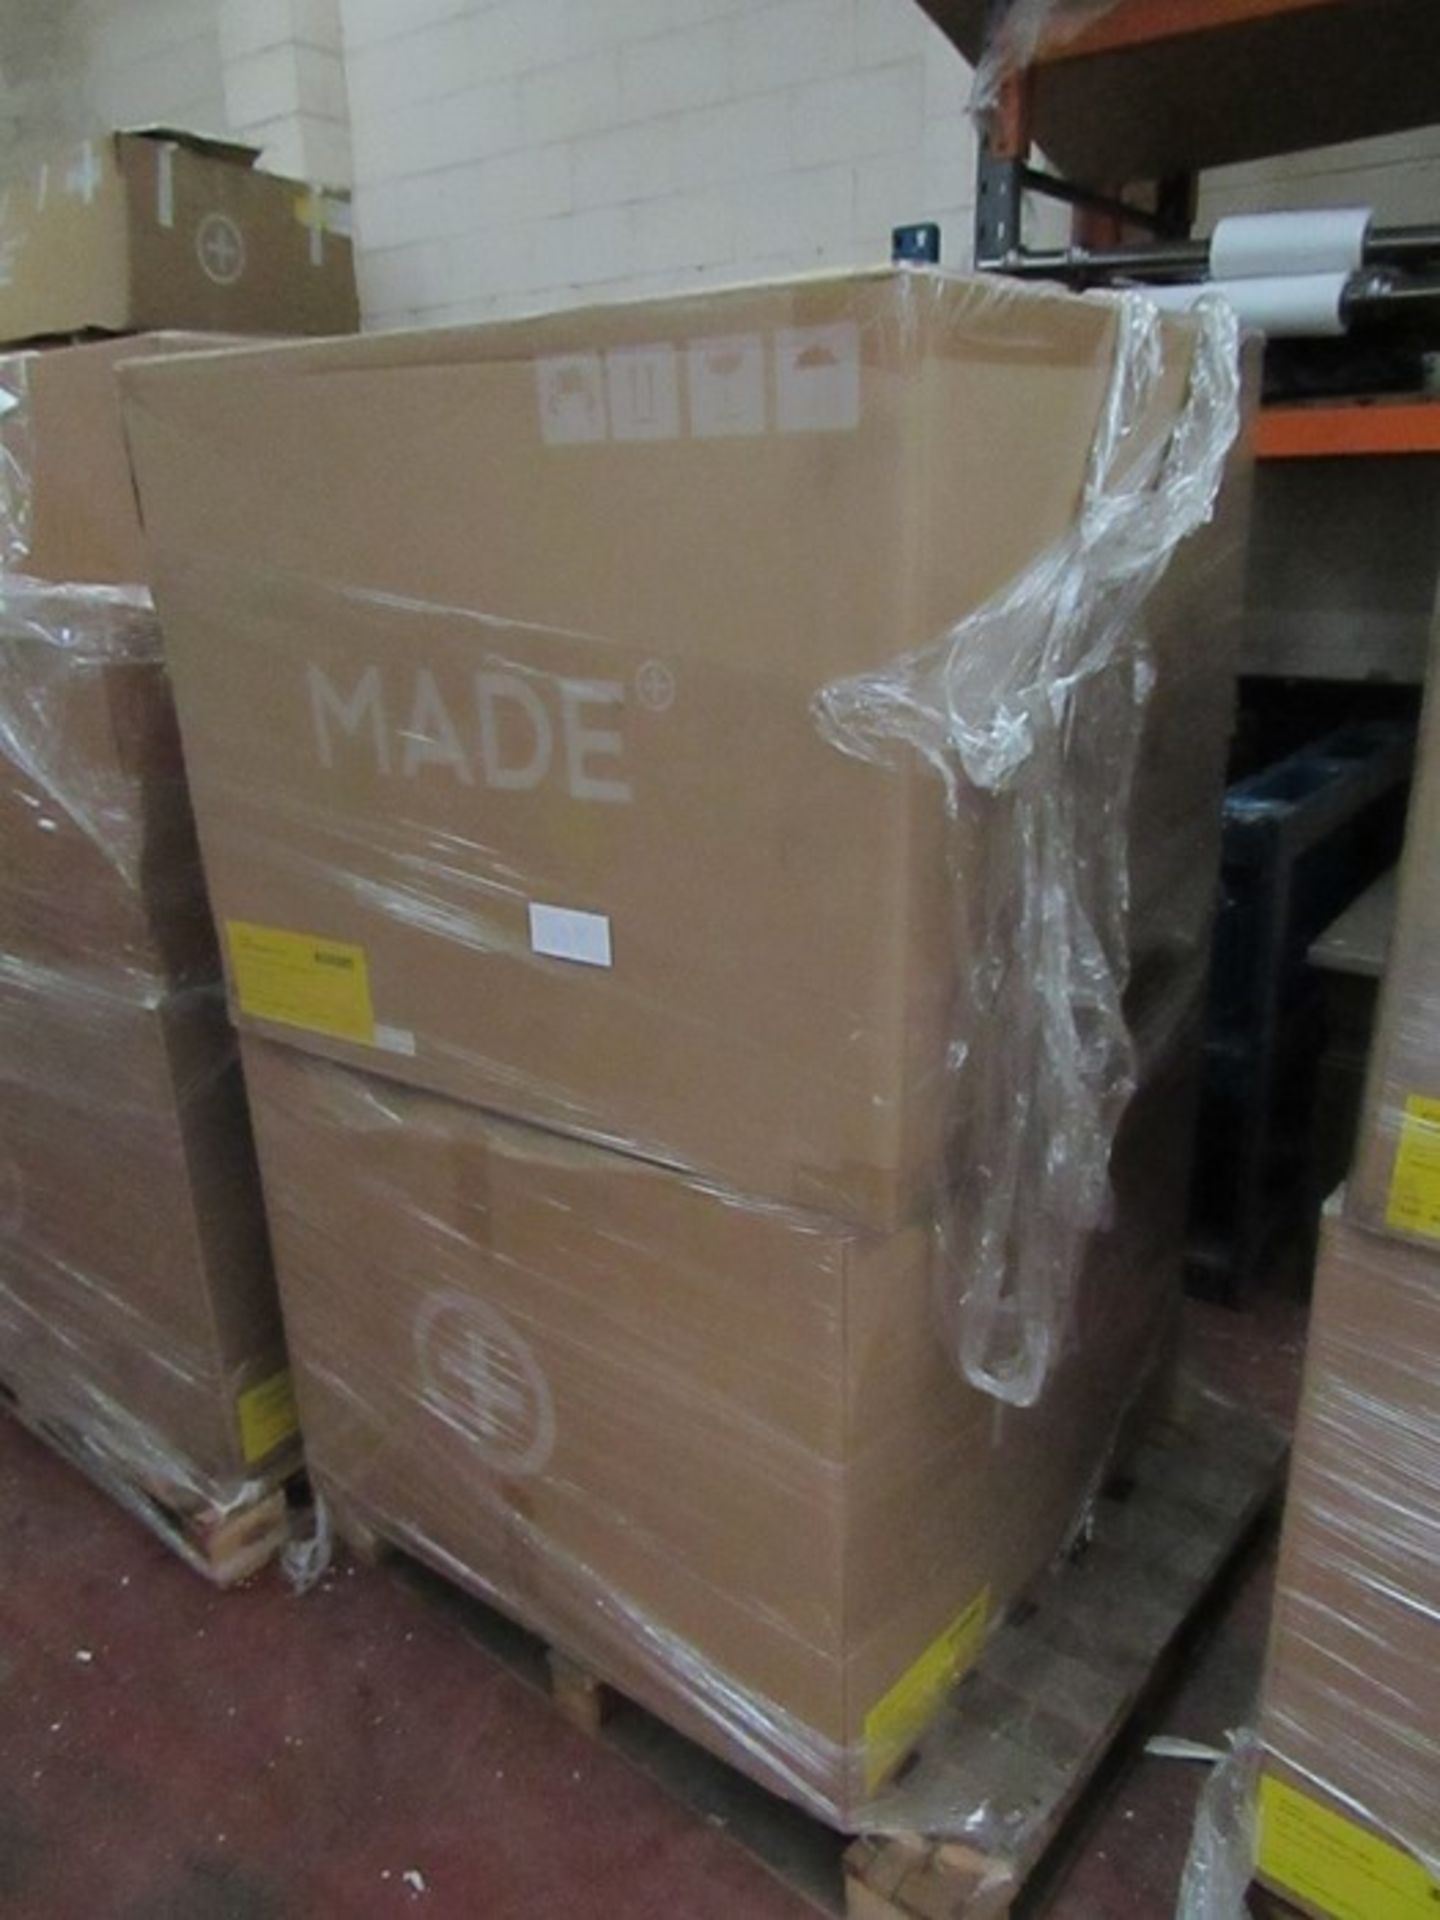   16x   PALLETS OF MADE.COM UNMANIFESTED SOFA PARTS, THESE ARE FROM VARIOUS SOFAS AND DONT APPEAR TO - Image 5 of 34